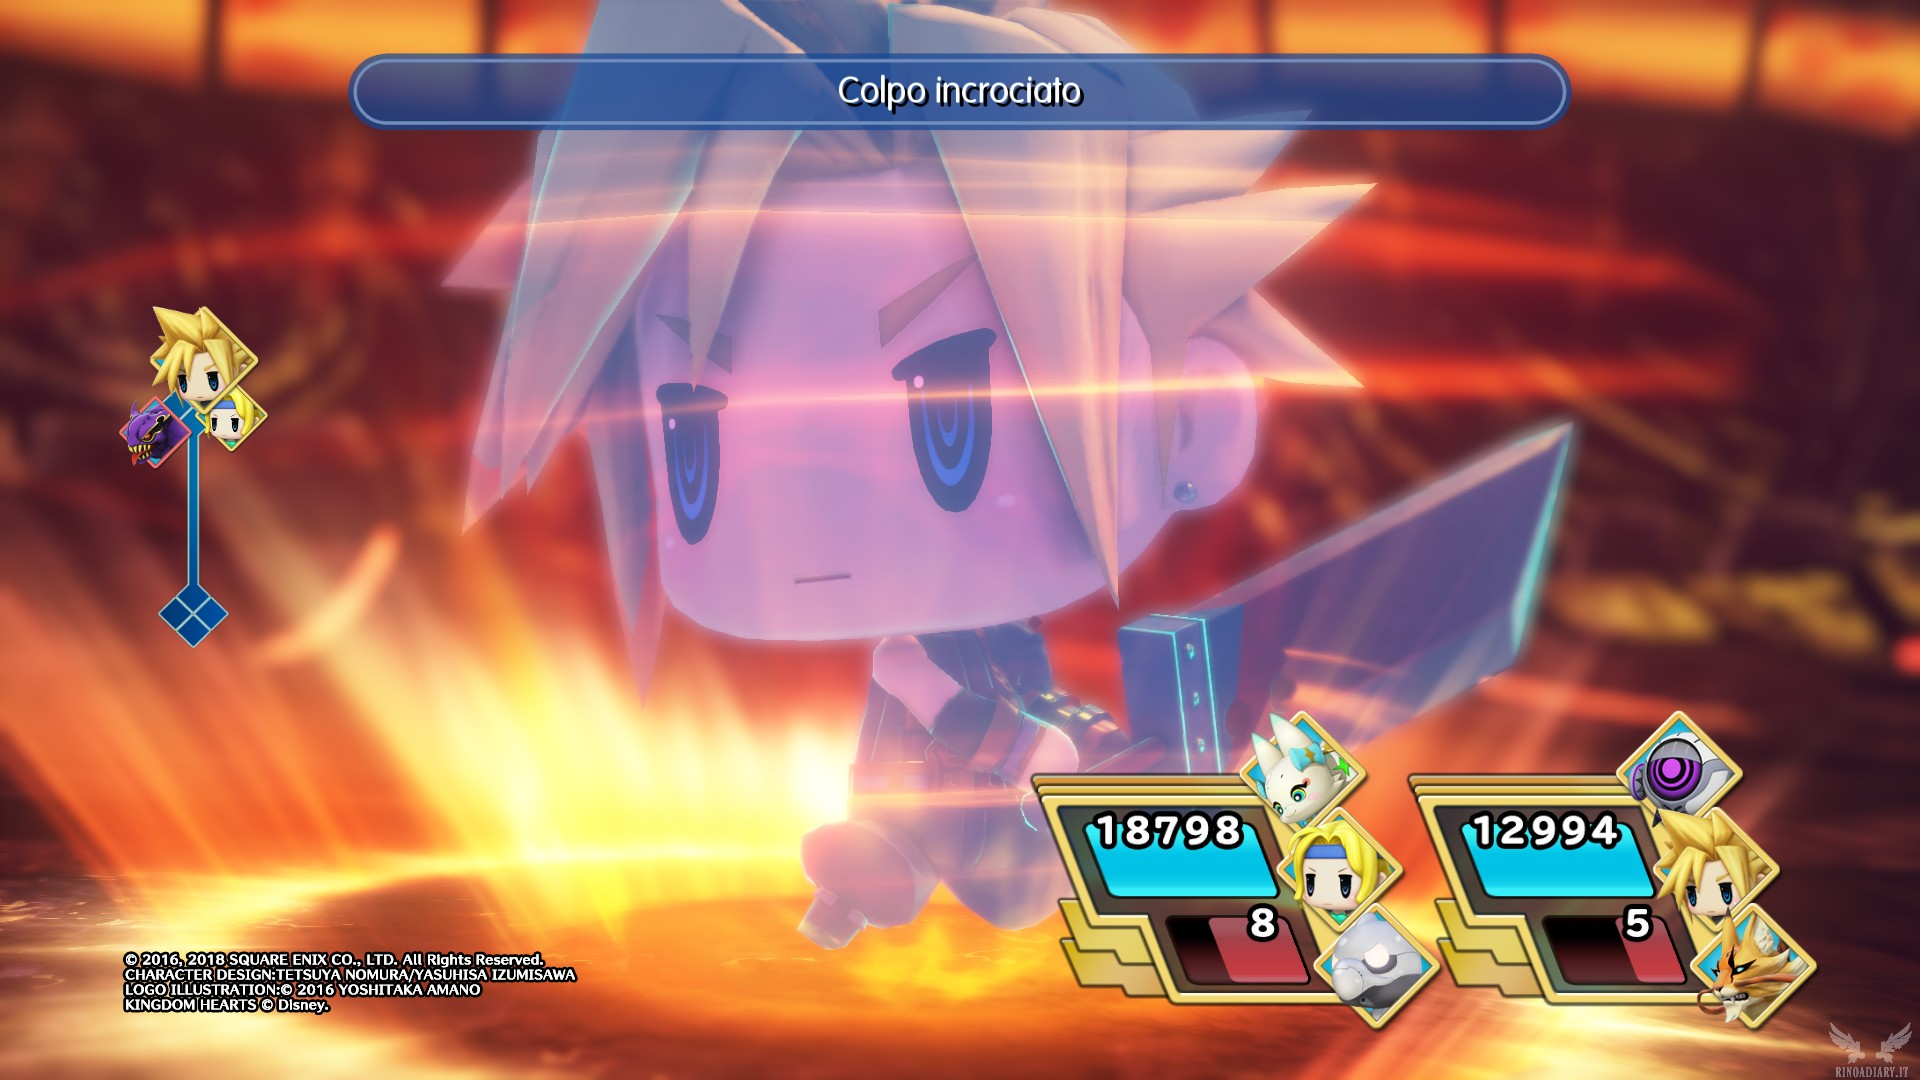 World of Final Fantasy MAXIMA: guida alle Campiongemme!